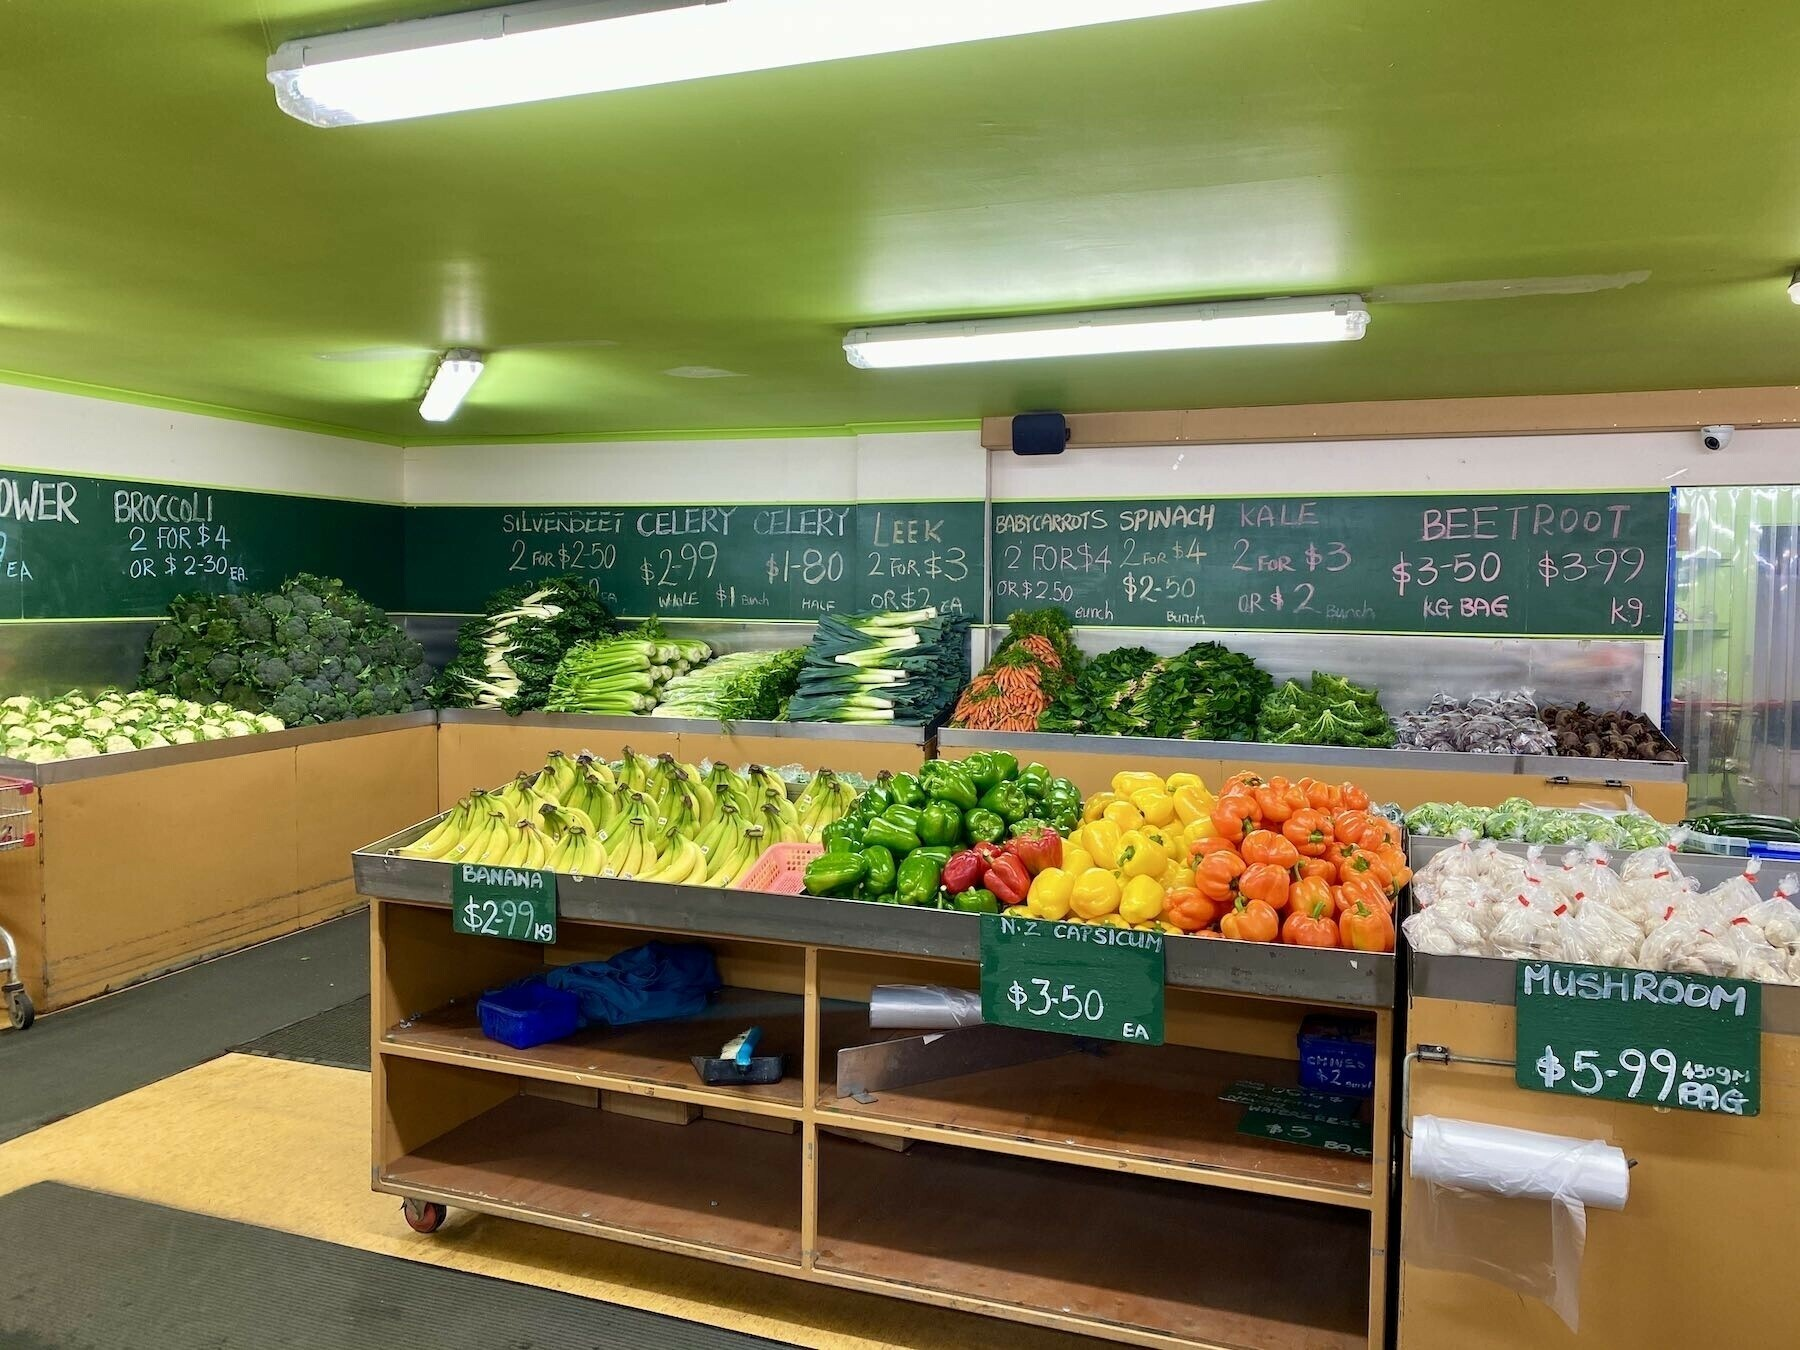 Shelves of fresh vegetables.